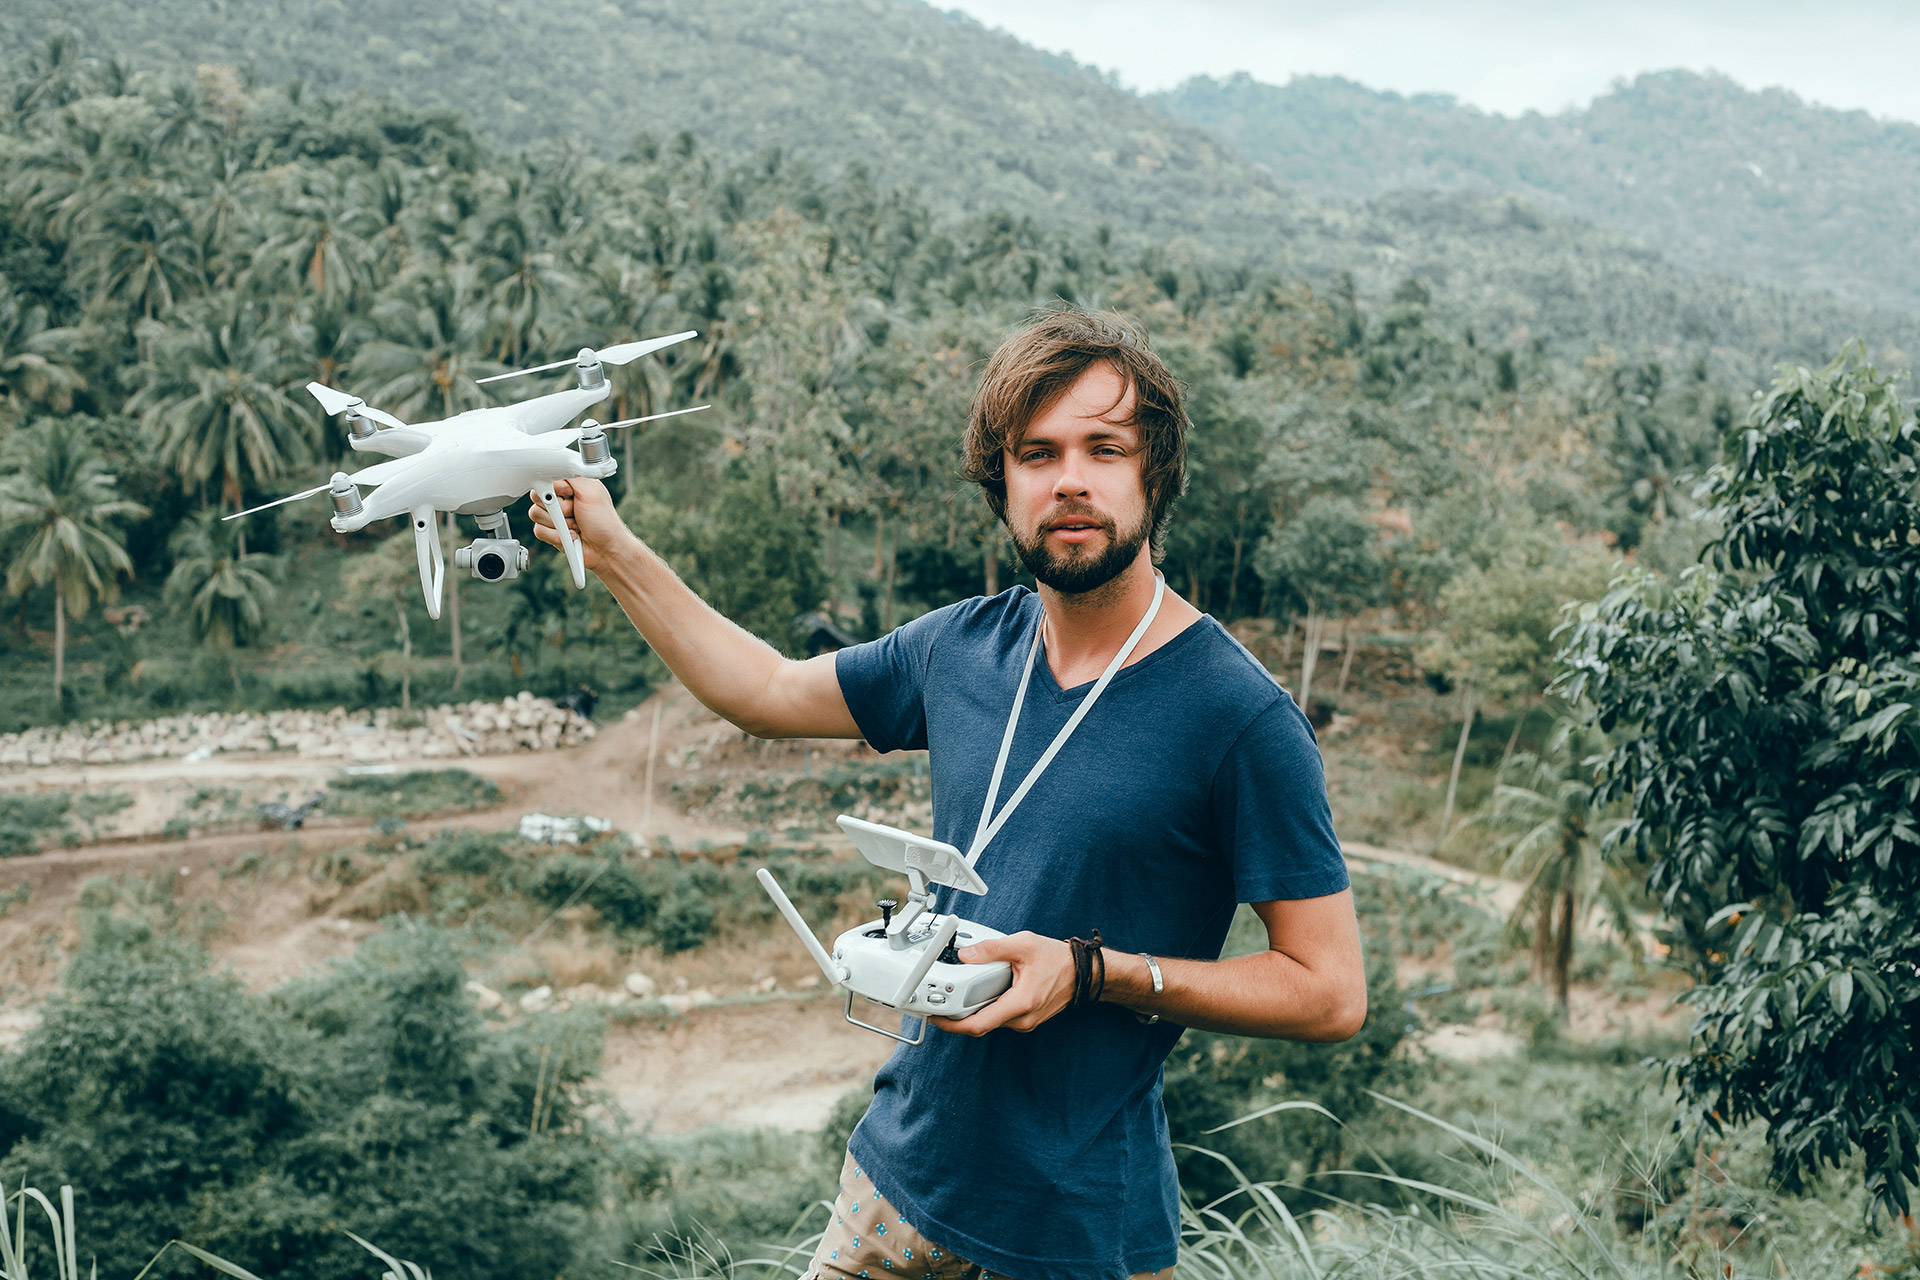 How Drones Have Impacted Our Lives